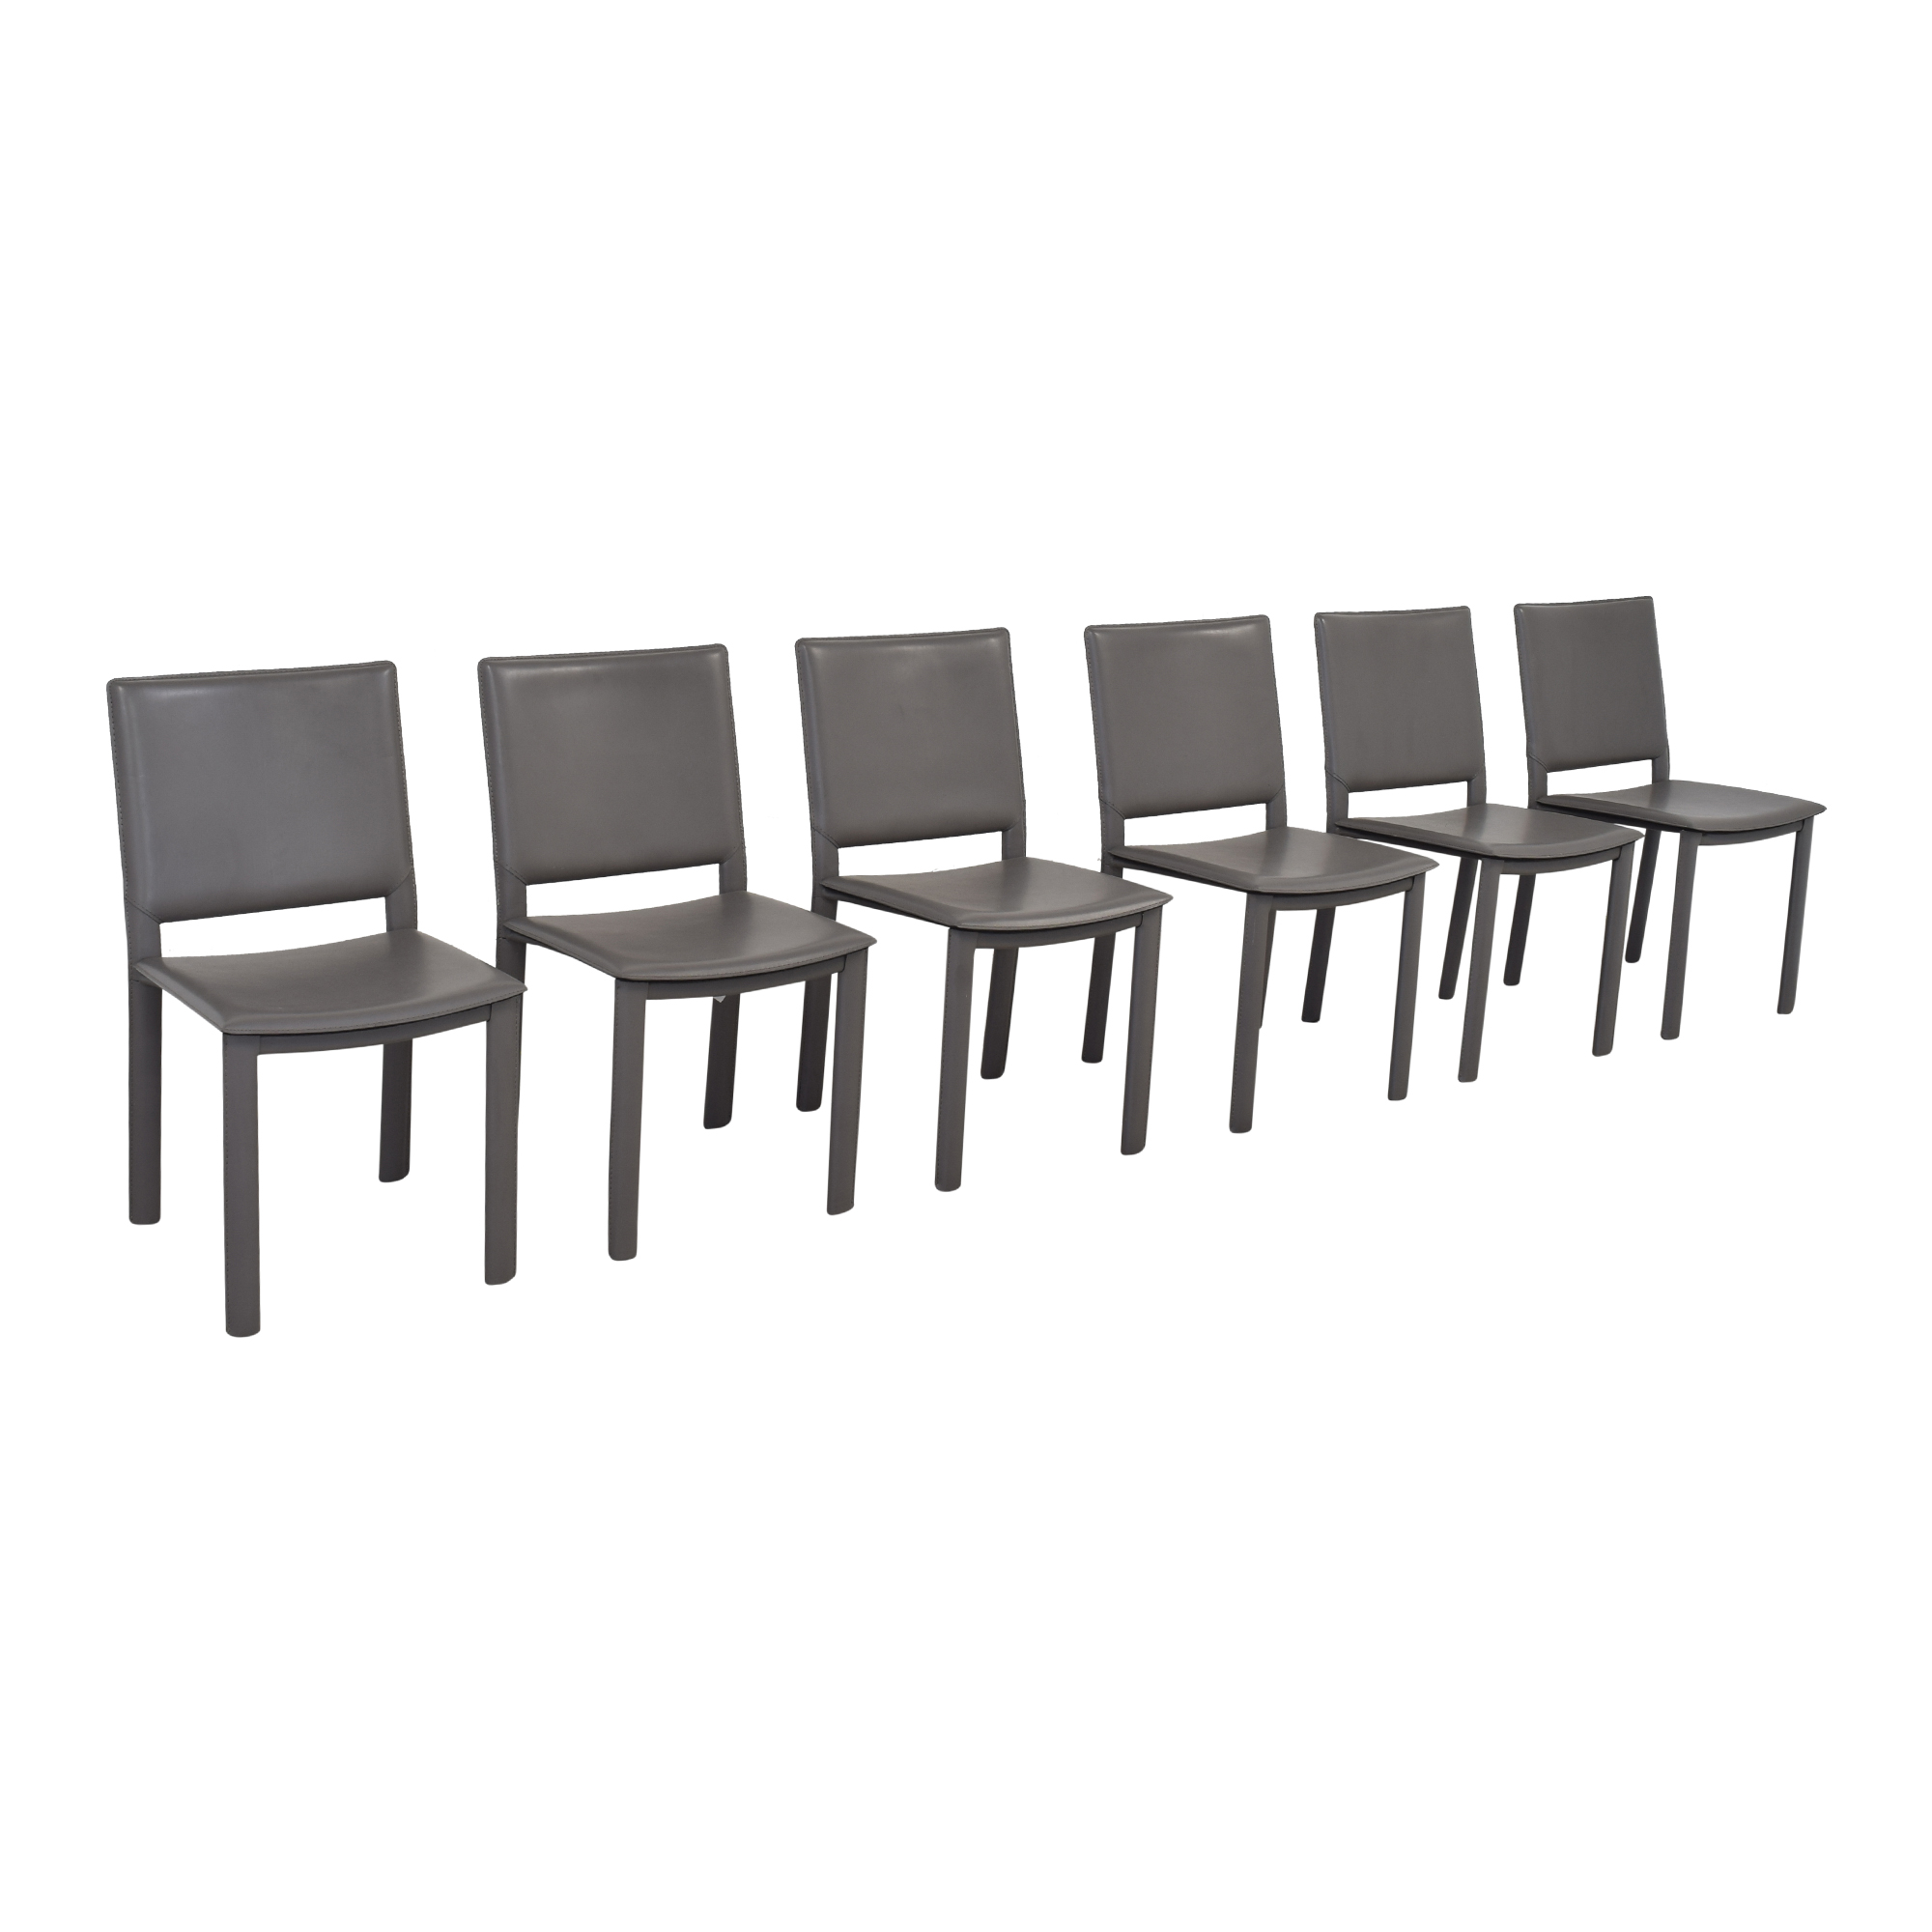 buy Room & Board Madrid Dining Chairs Room & Board Chairs